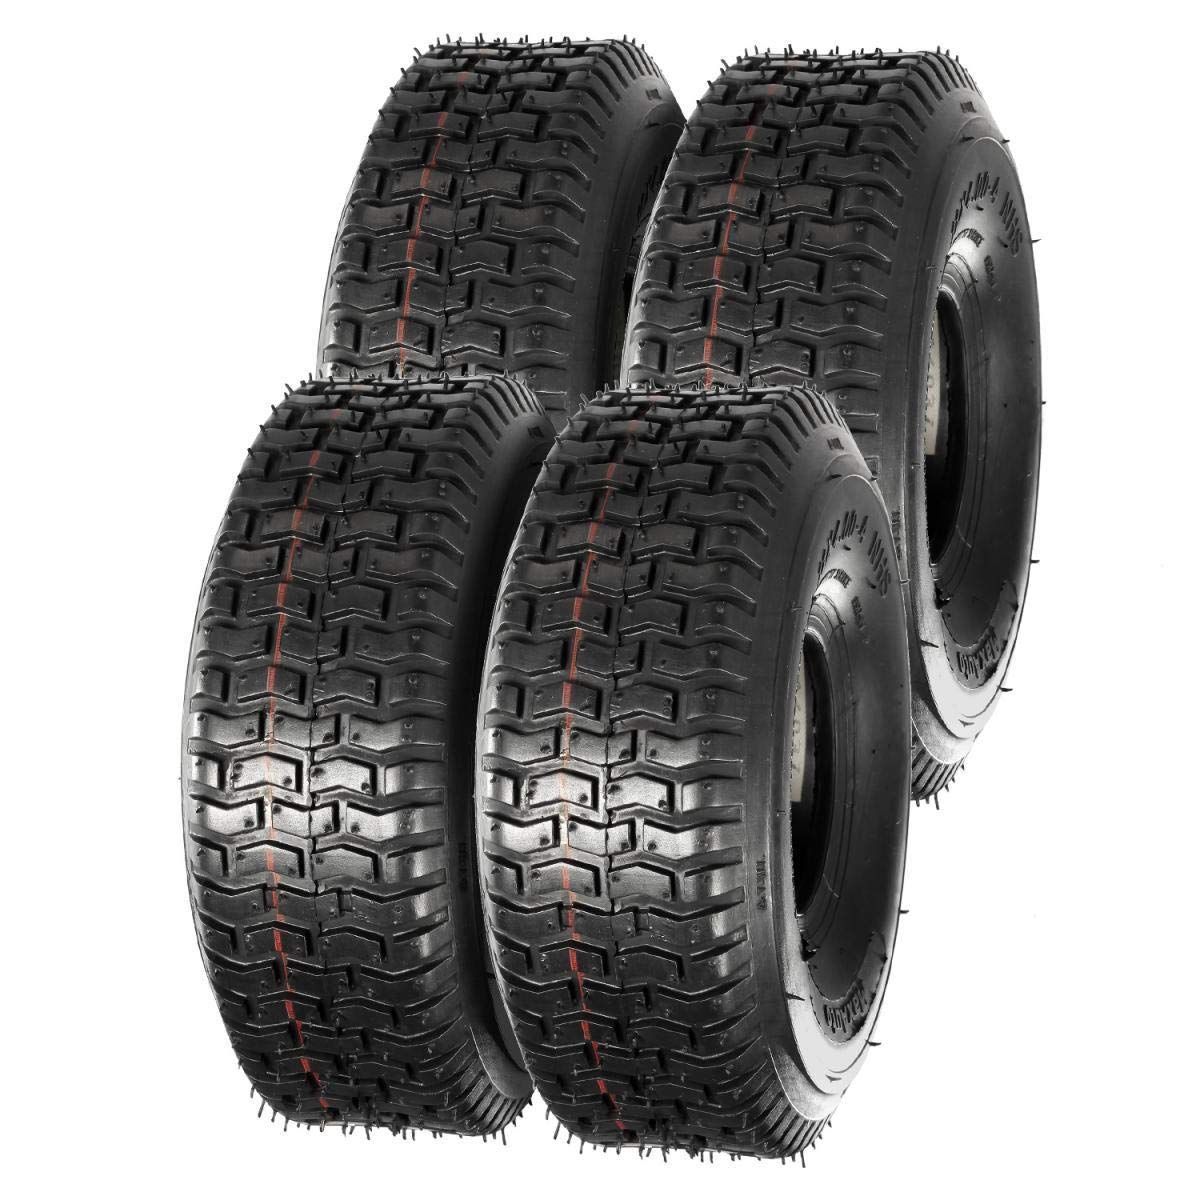 Maxauto 11x4x4 11x4 00 4 Turf Saver Lawn And Garden Tire P512 Lra Set Of 4 Click Image For More Details This Is An Affiliate Lawn And Garden Tire Savers